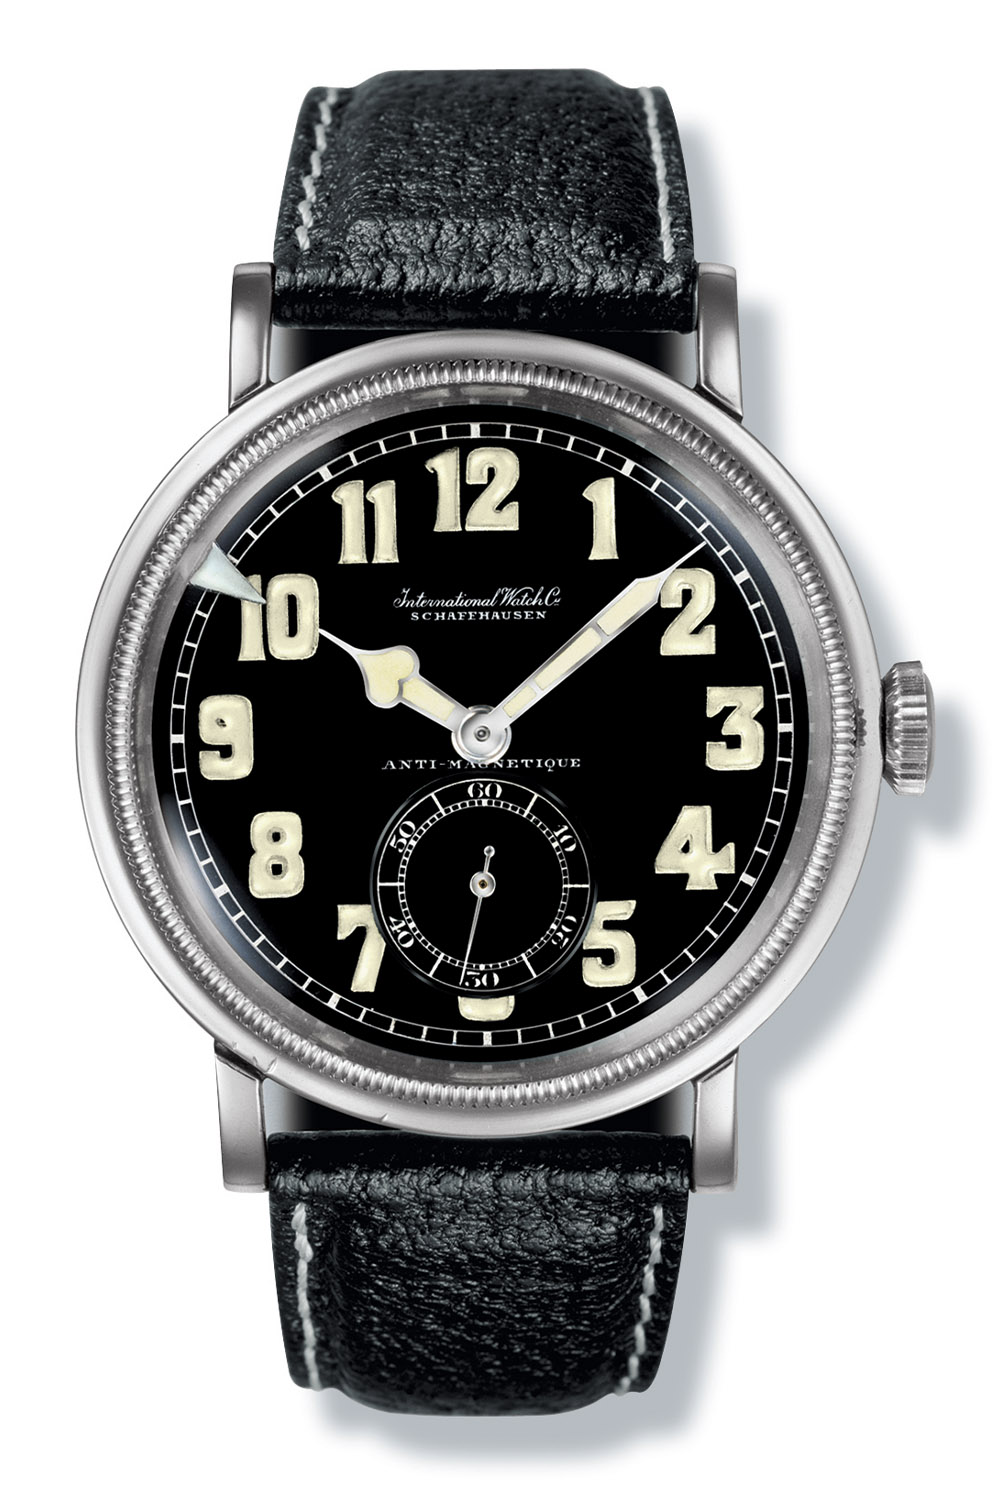 IWC 1936 Special Pilots Watch